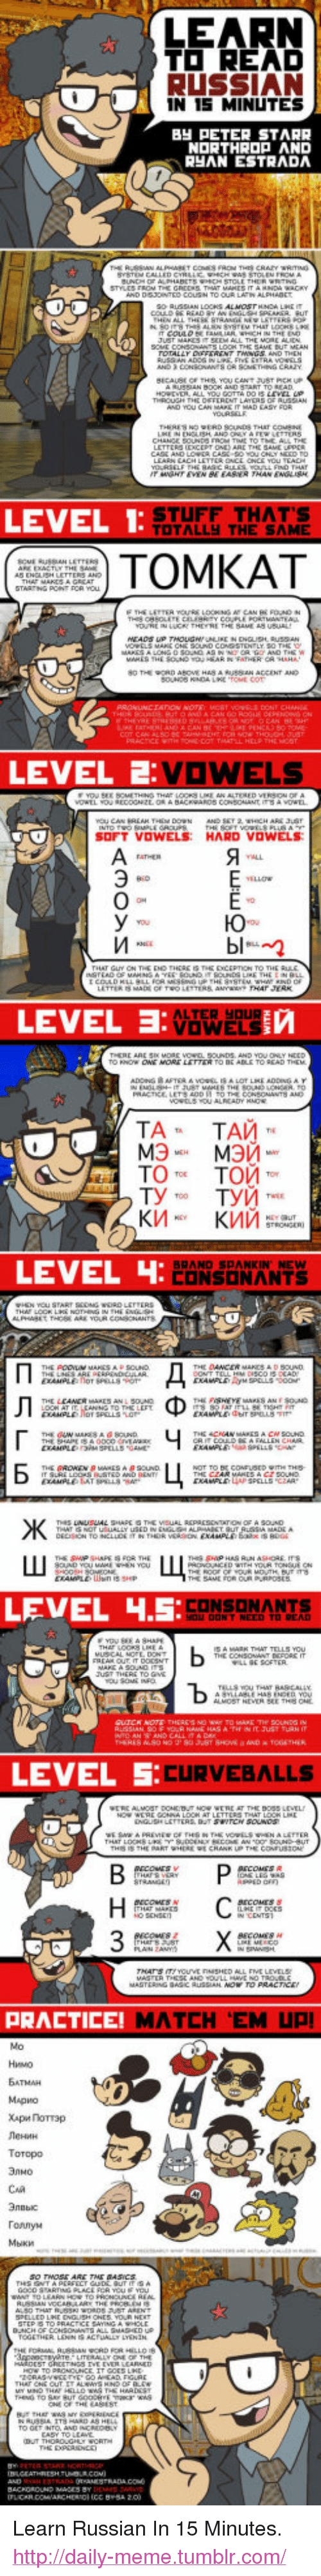 """Russian: LEARN  TO READ  RUSSIAN  IN 15 MINUTES  BH PETER STARR  늬AN ESTRADA  COLUSN TO CR  r war VEN  LEVEL 1  STUF  TOTALLy THE SAME  THAT'S  TOMKAT  SOFT VOWELS HARD VOWELS  LEVEL  VOWELSE  ТАТА ТАЙі  тото.  Той то.  LEVEL  CONSONANTS  LEVEL .5:  NT NEED TO  LEVEL 5  CURVEBALLS  PRACTICE!  MATCH EM UP  Нимо  ATMAH  MApHo  Хара. Поттар  Ленин  ToTopo  CAR  ronnyM <p>Learn Russian In 15 Minutes.<br/><a href=""""http://daily-meme.tumblr.com""""><span style=""""color: #0000cd;""""><a href=""""http://daily-meme.tumblr.com/"""">http://daily-meme.tumblr.com/</a></span></a></p>"""